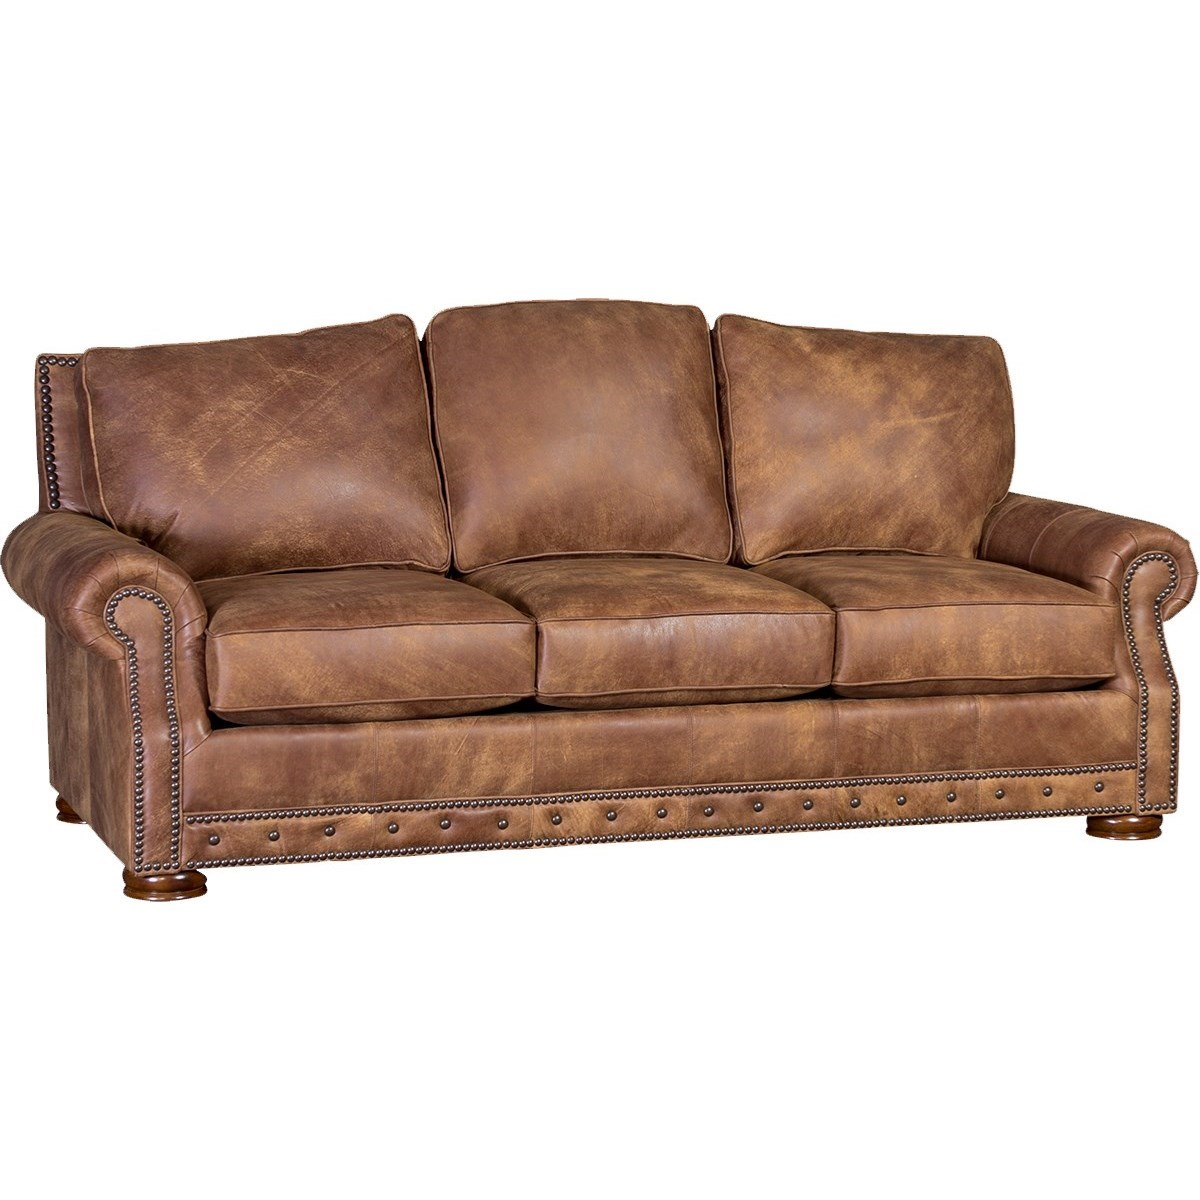 2900 Sofa by Mayo at Wilson's Furniture